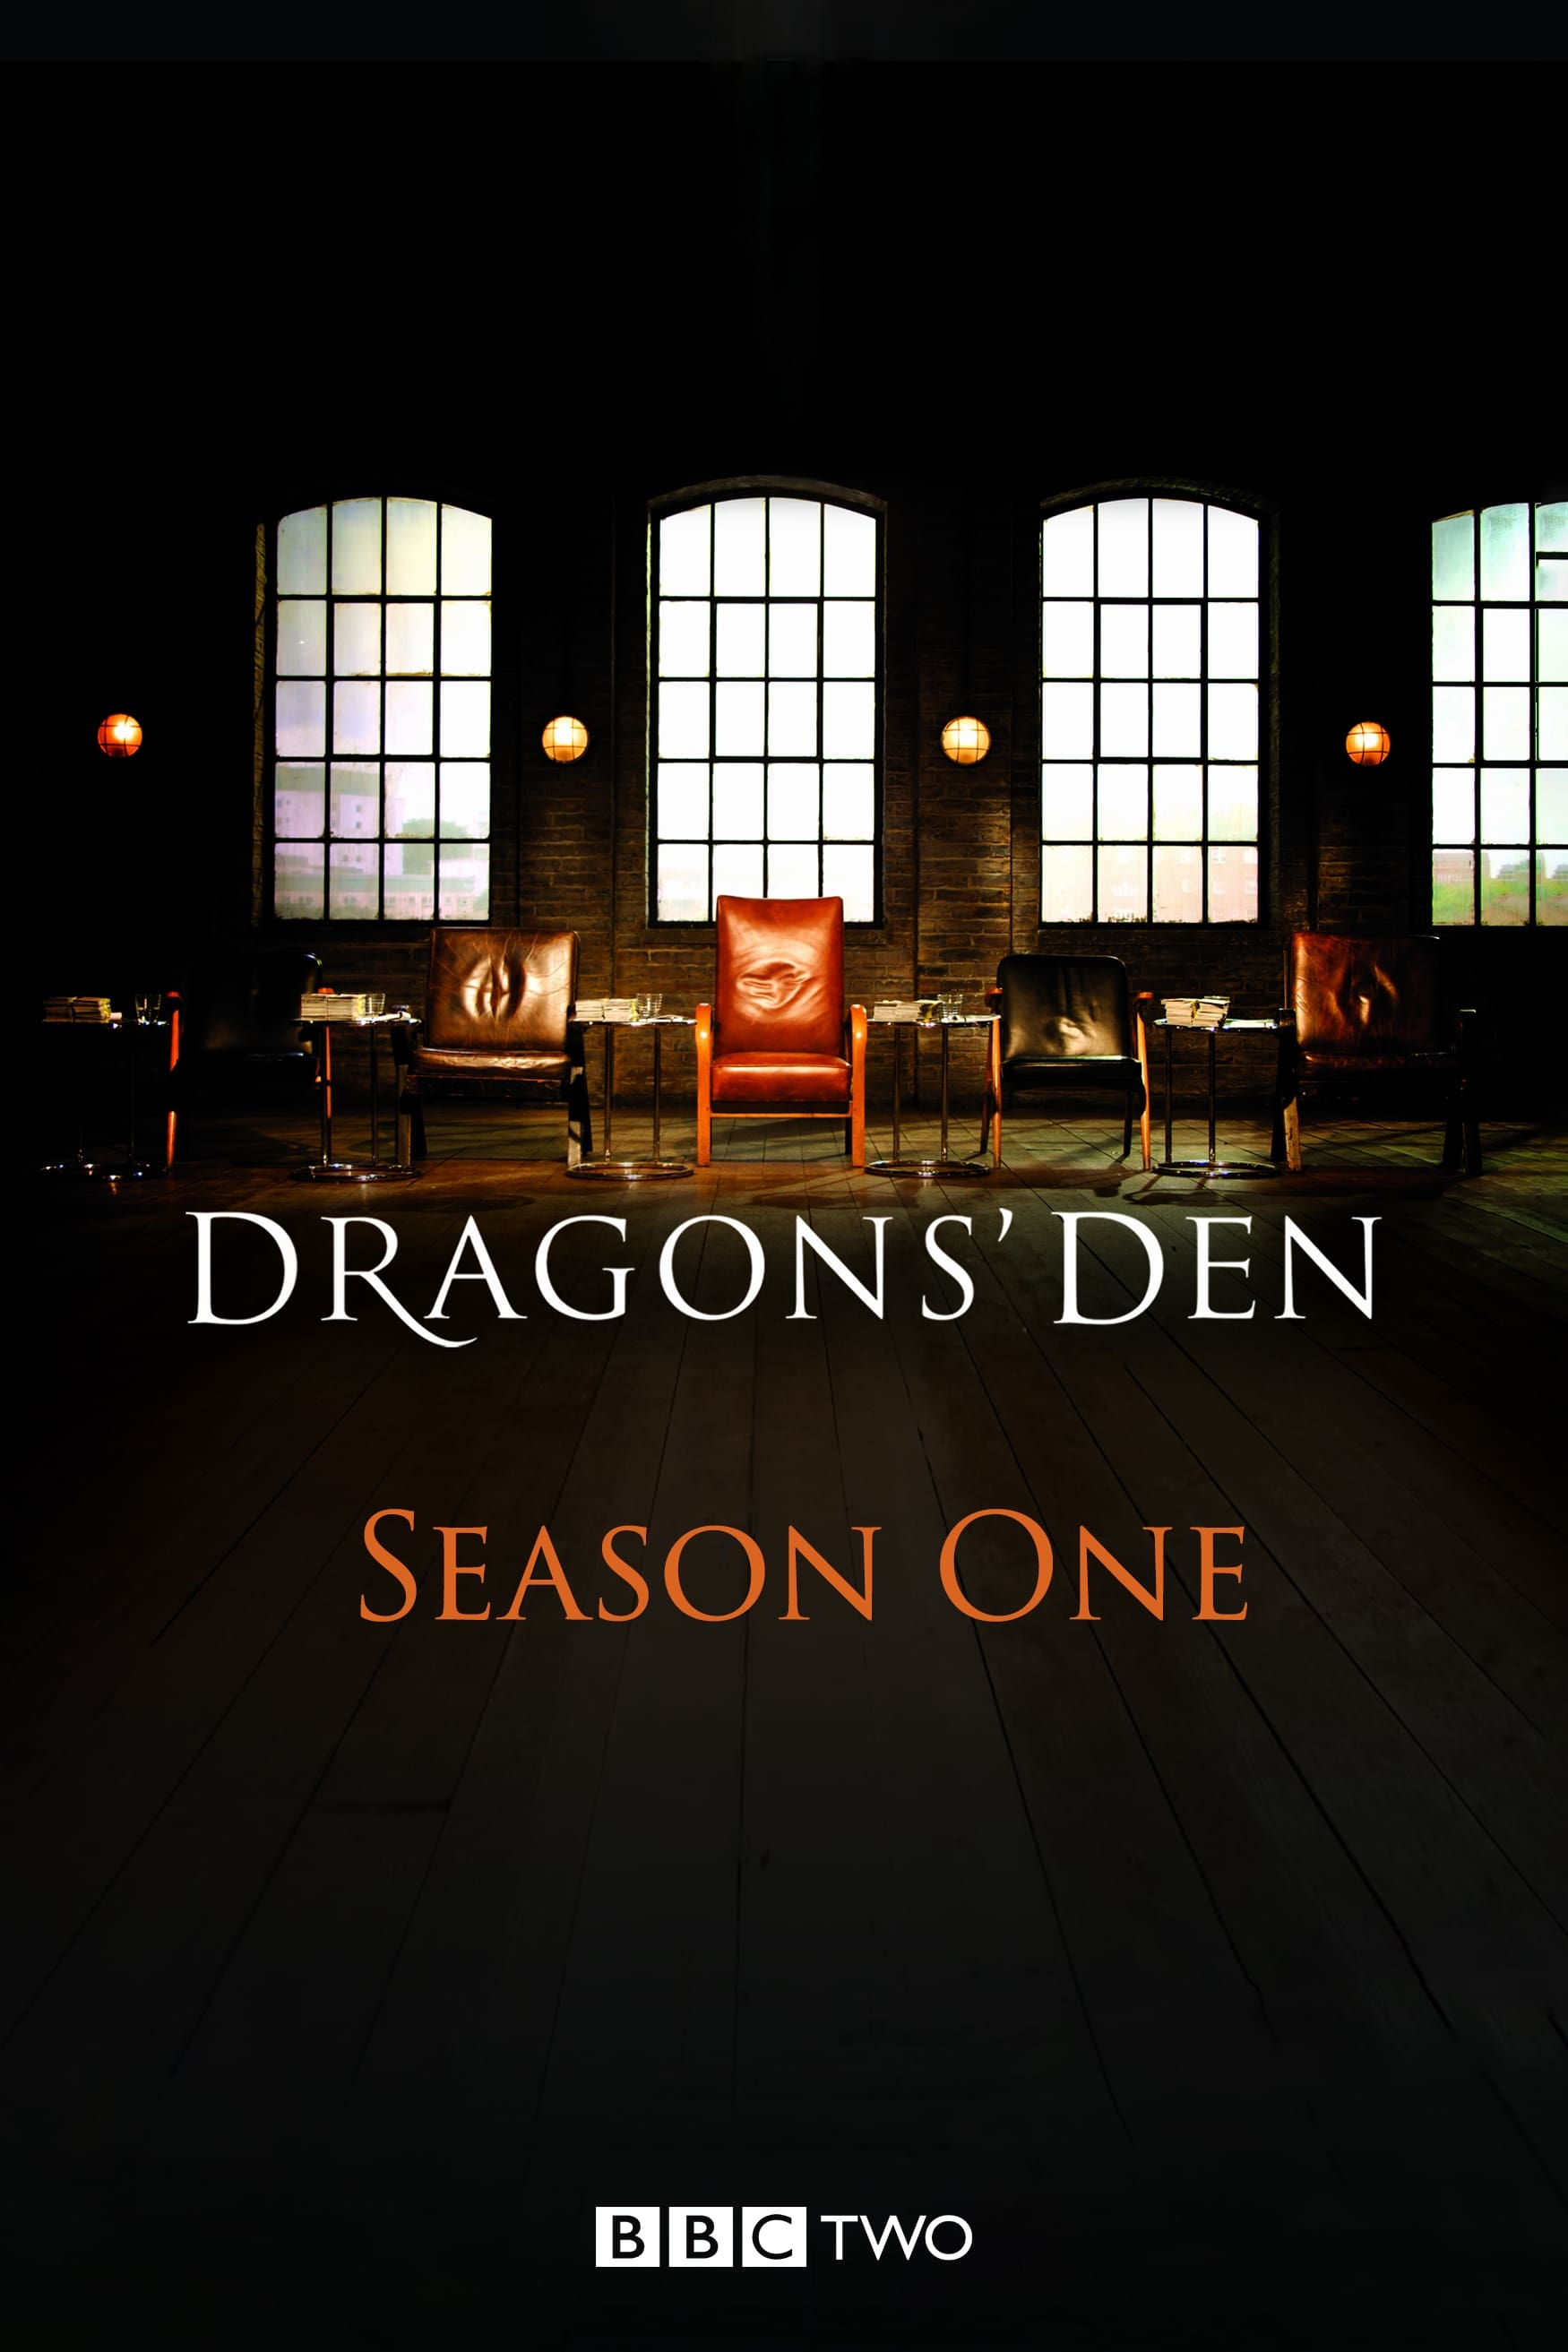 Dragons' Den Season 1